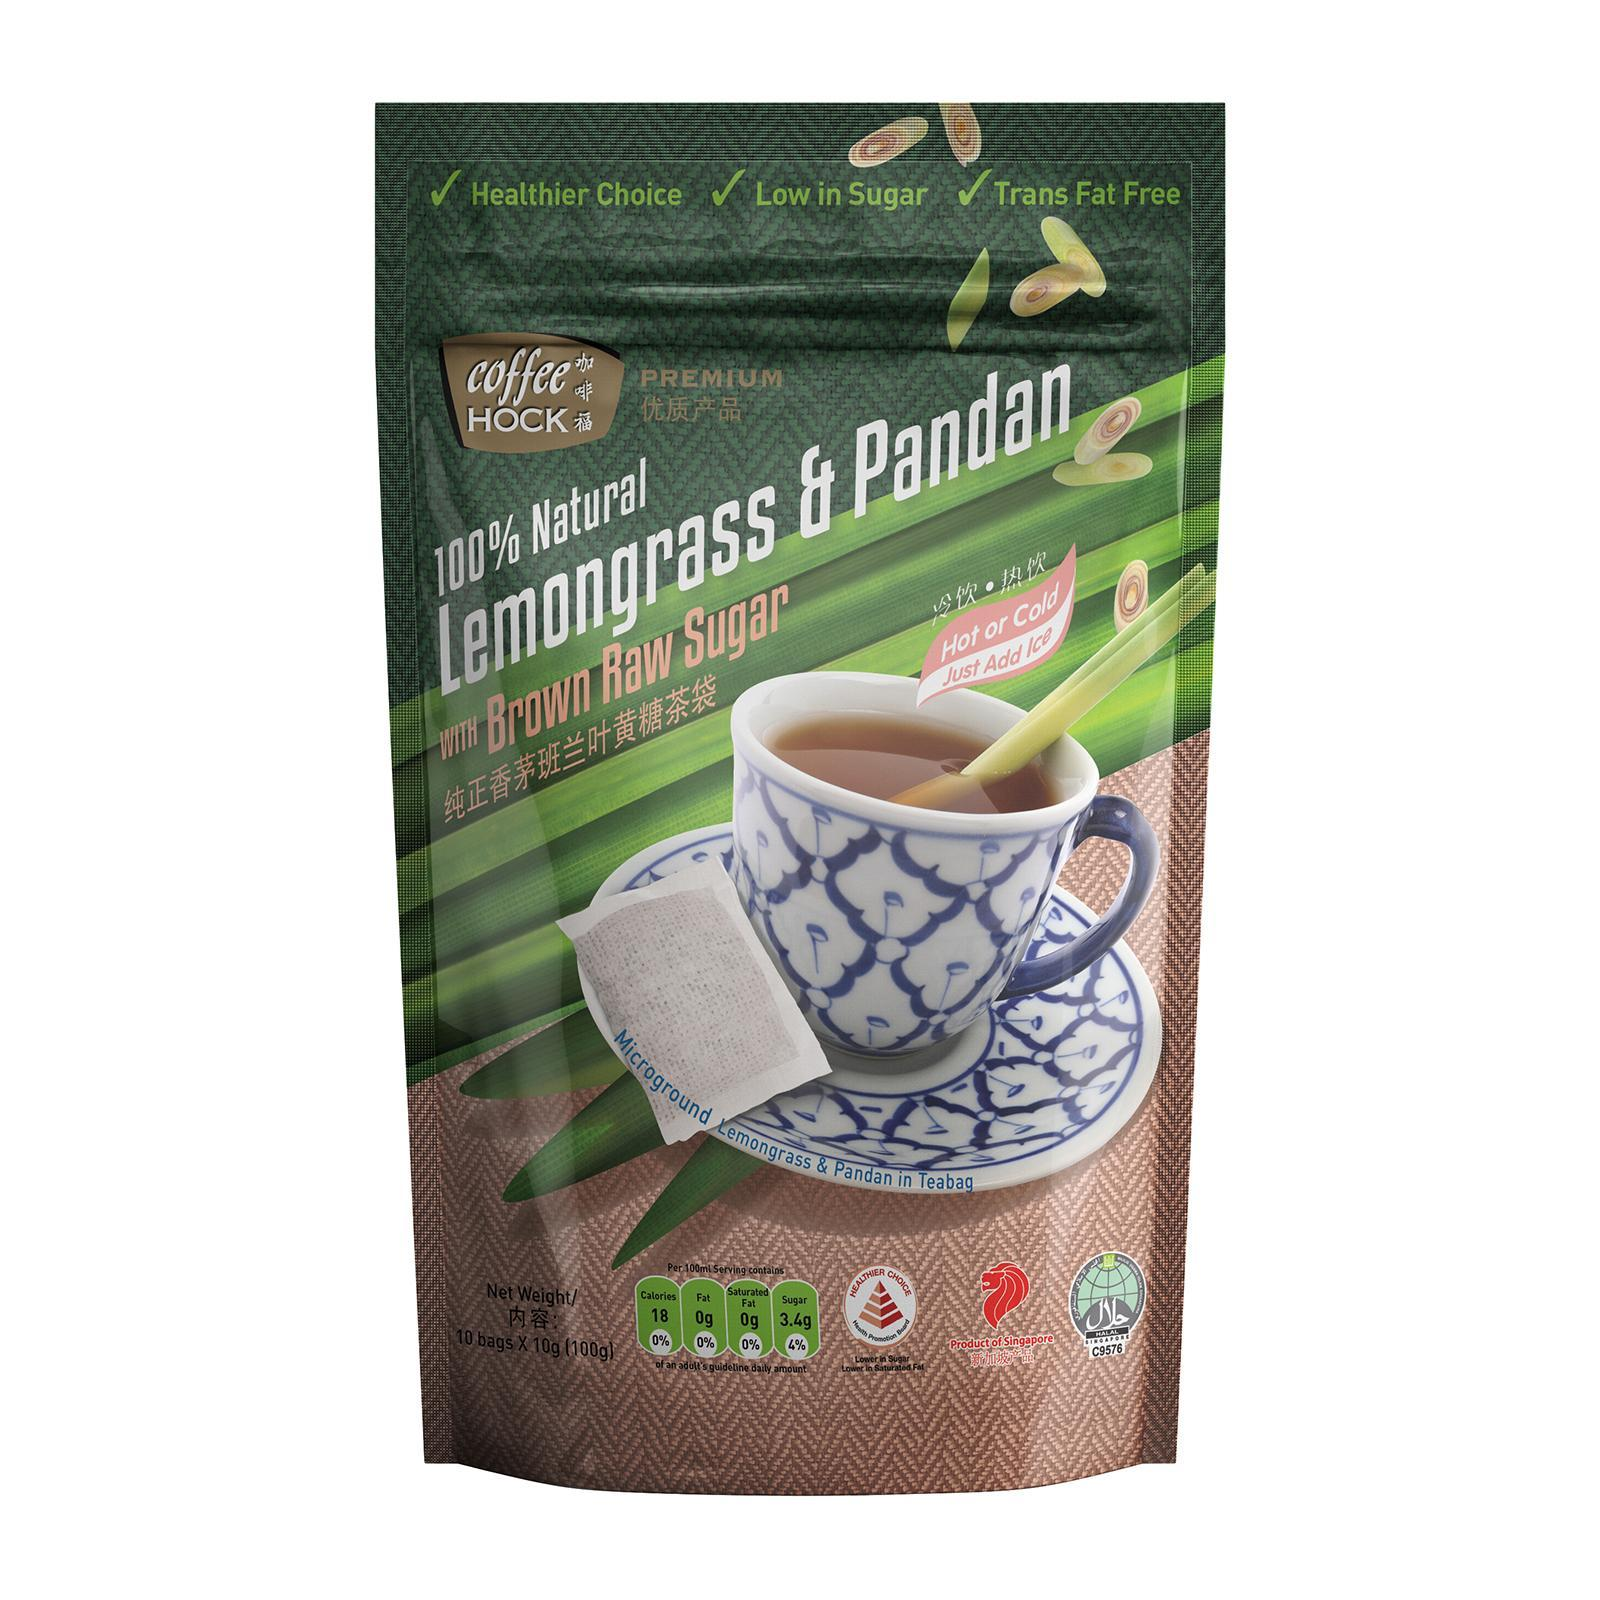 Coffeehock 100% Natural Lemongrass And Pandan Drink With Brown Raw Sugar Tea - By Prestigio Delights